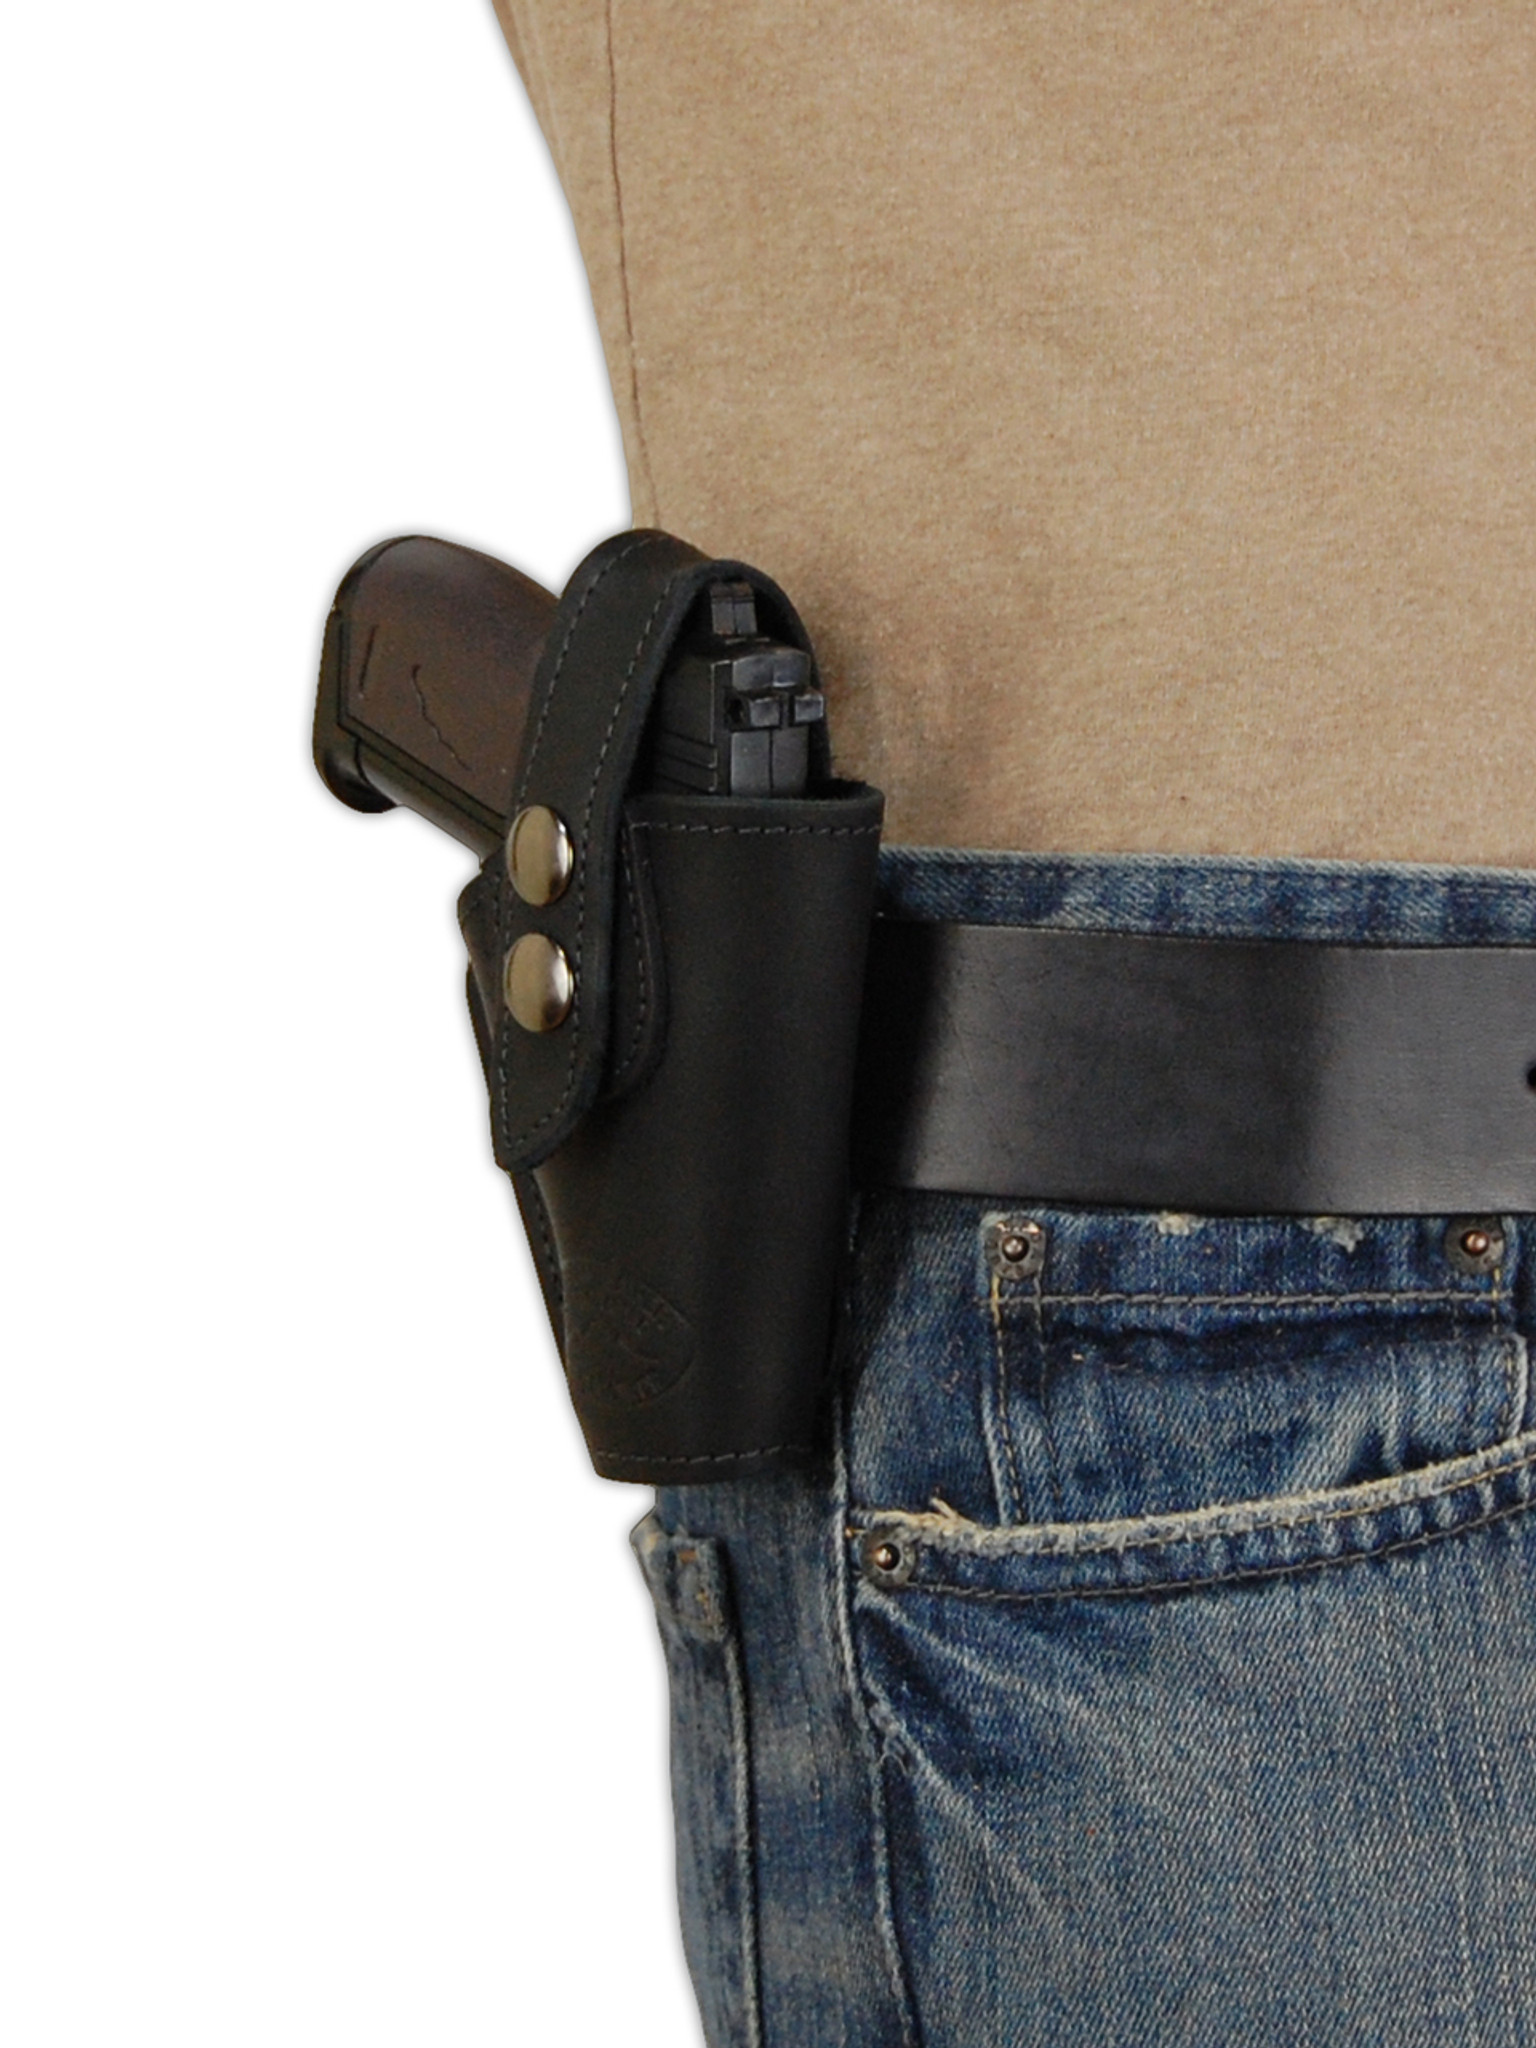 Black Leather OWB Holster for Mini  22  25  32  380 Pistols